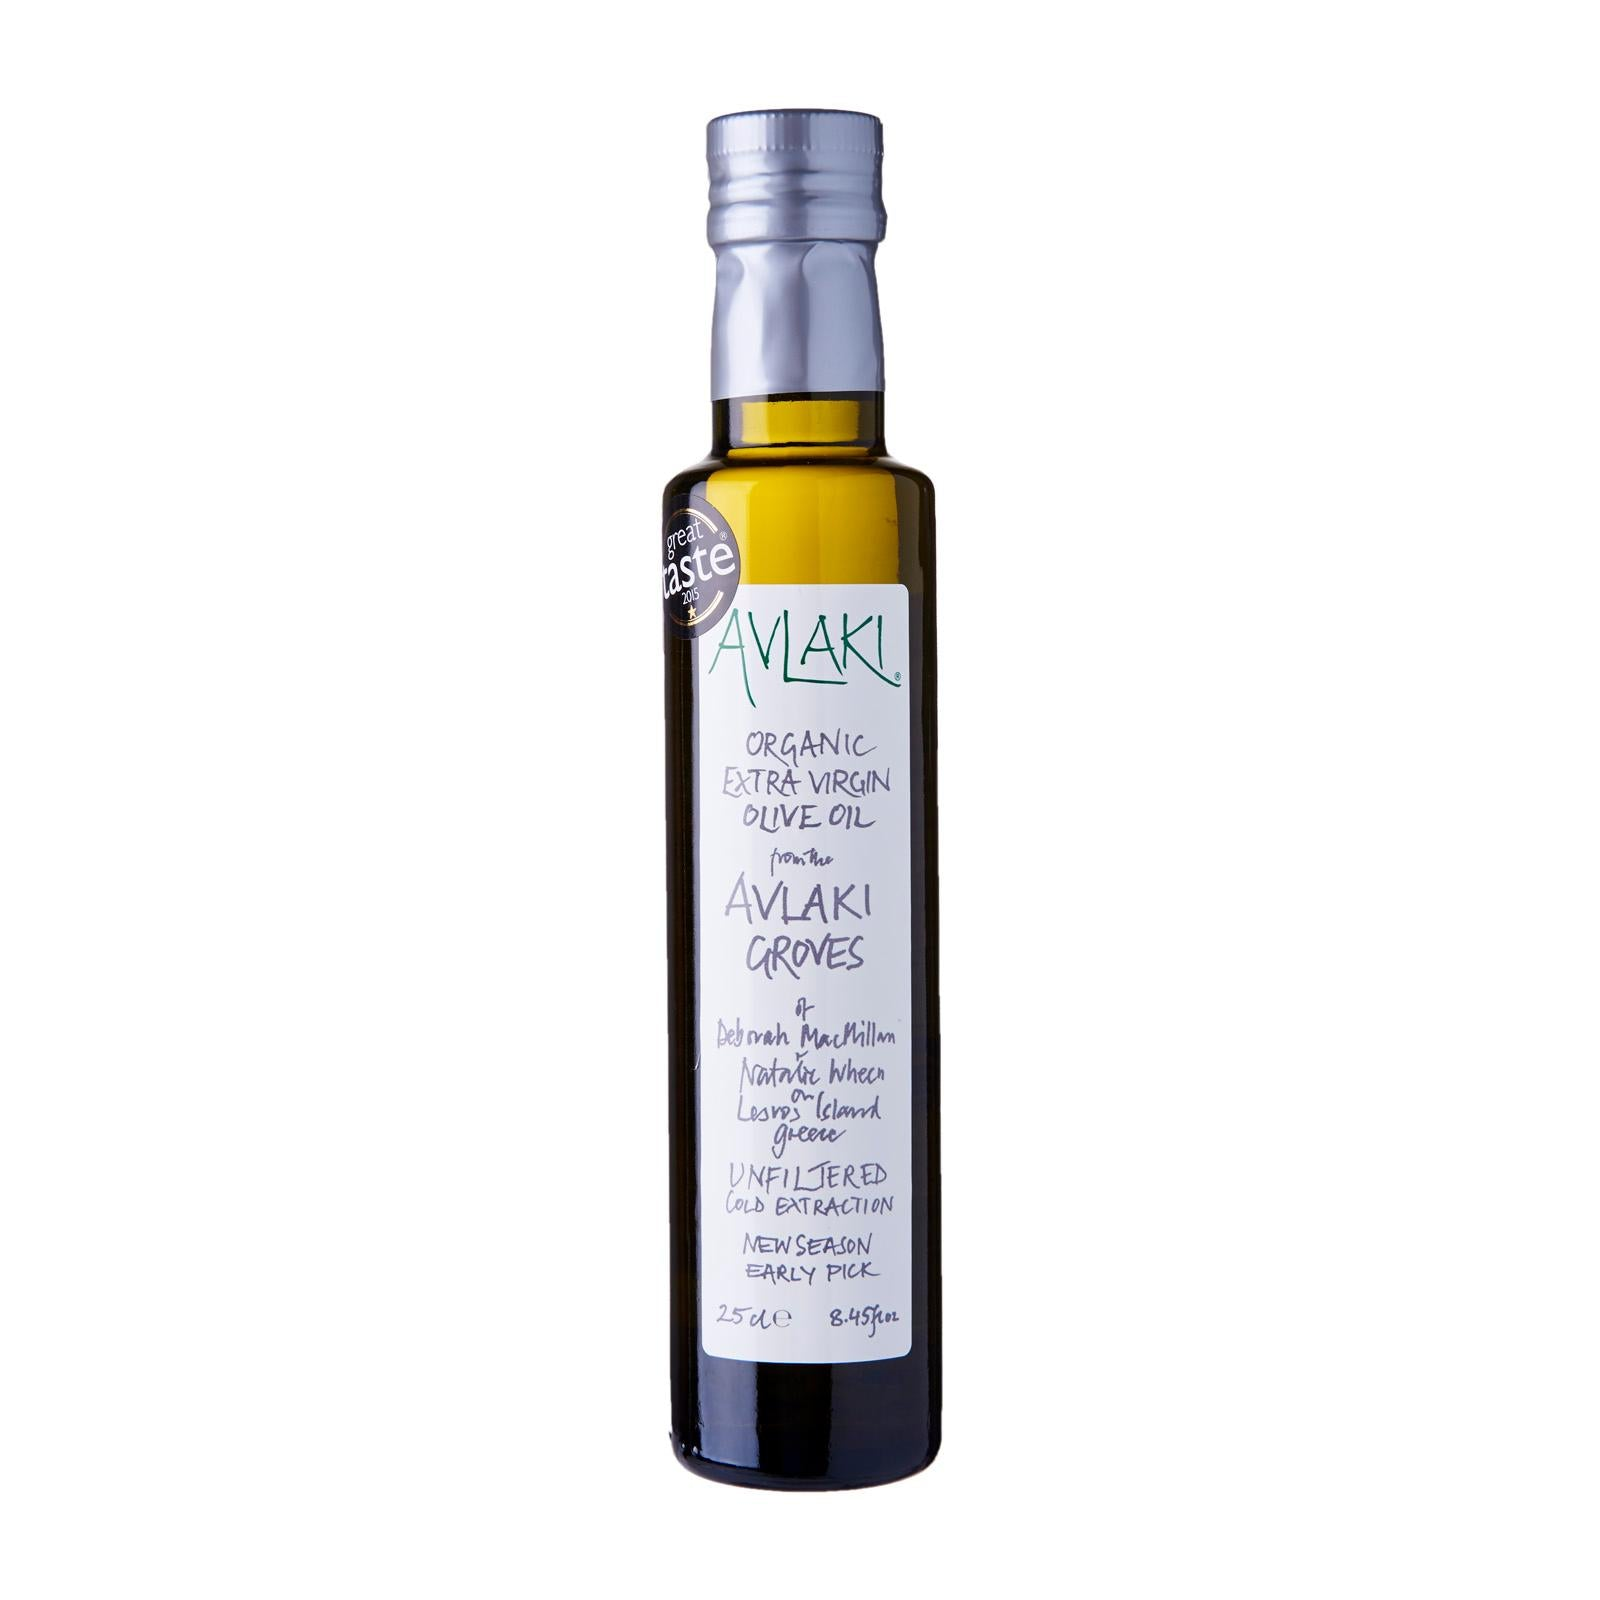 Avlaki Groves Extra Virgin Organic Olive Oil (250ml) Front